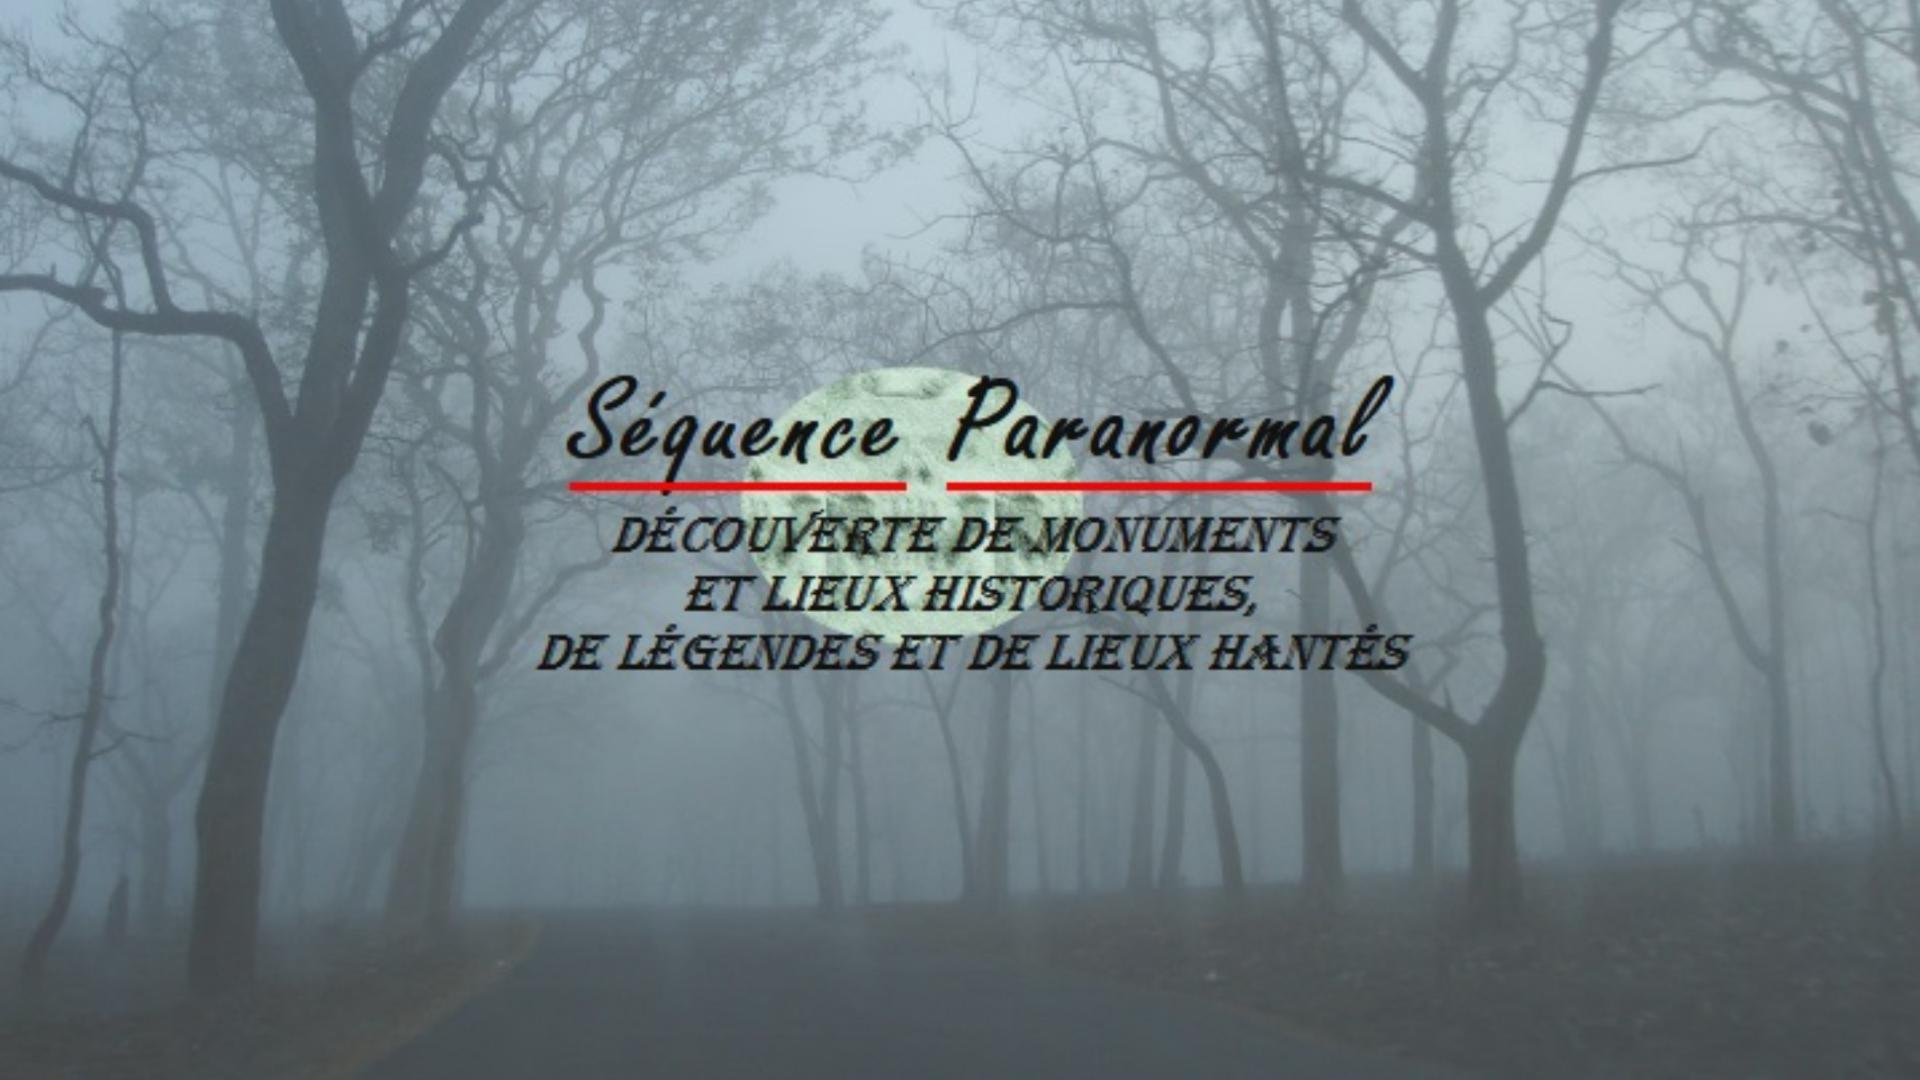 Séquence paranormal